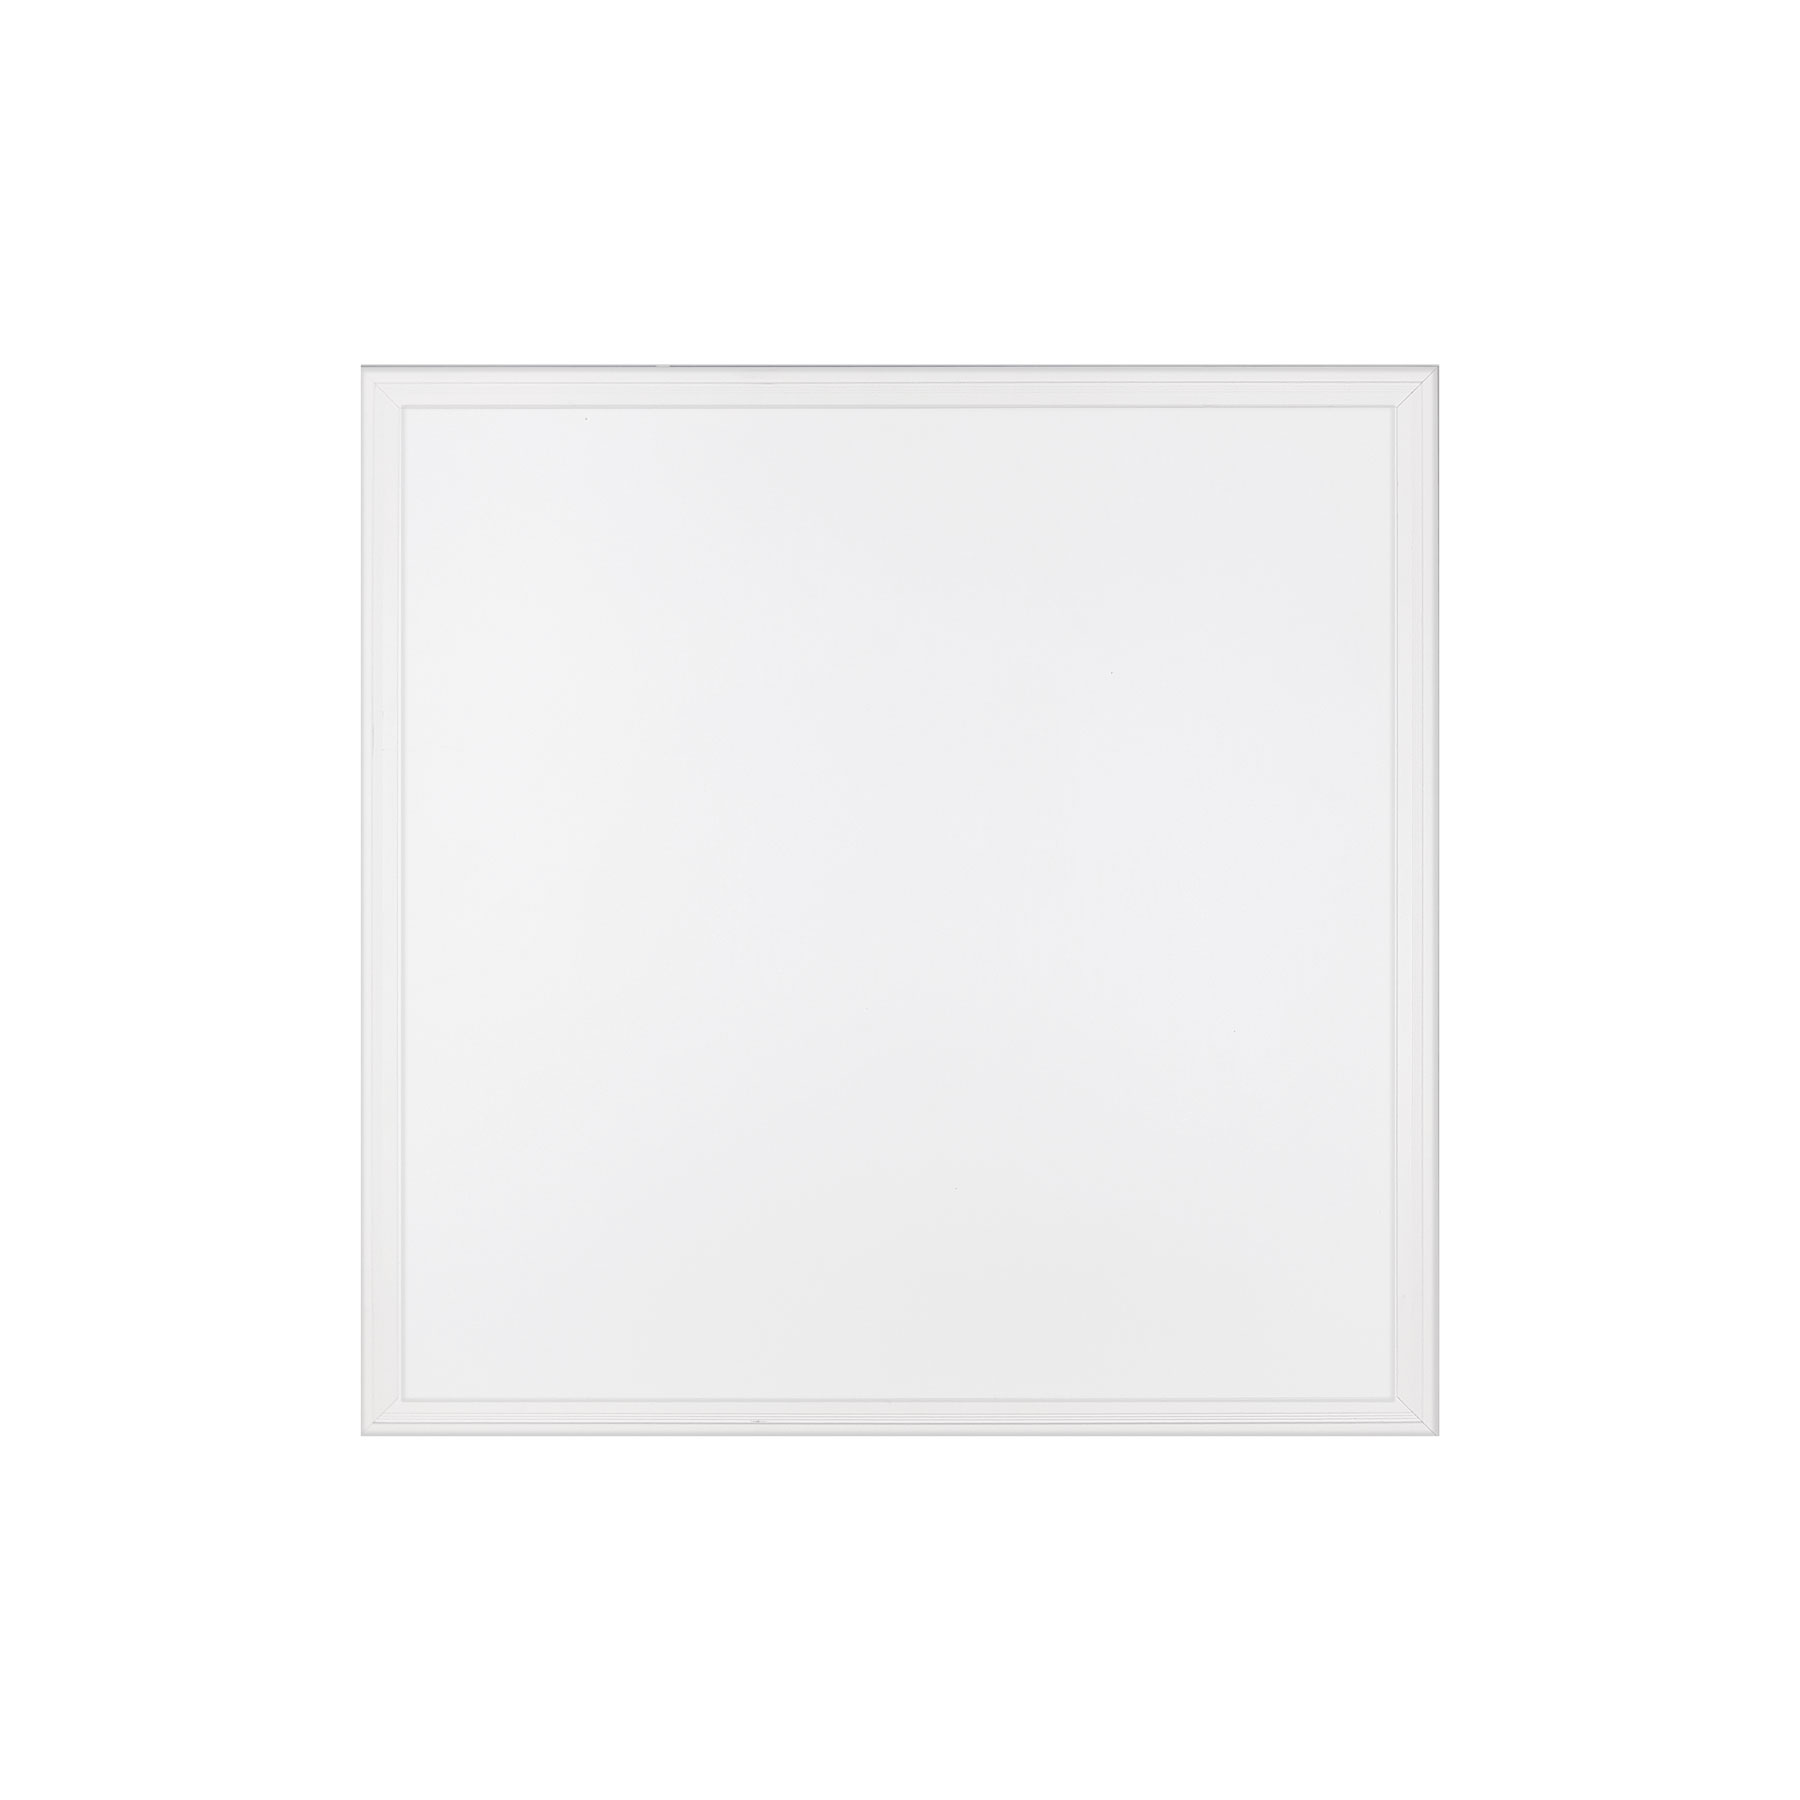 Cürv Ceiling Tile Infrared Panels - White